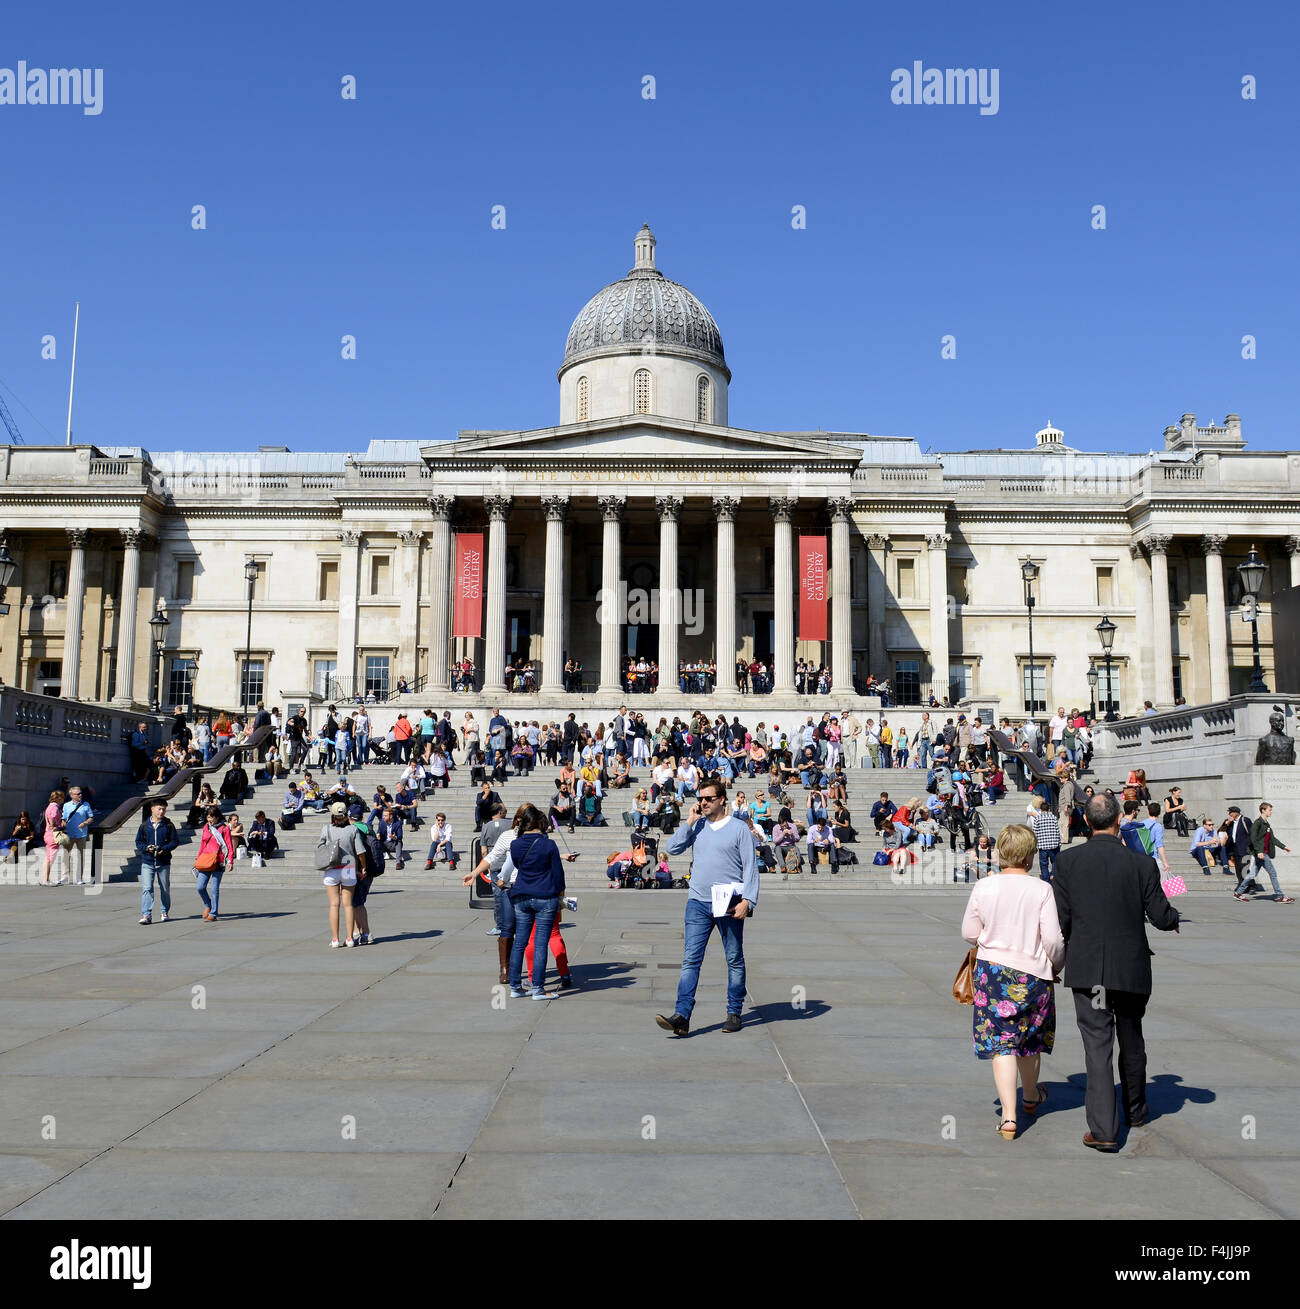 The National Gallery art museum, Trafalgar Square, City of Westminster, Central London - Stock Image